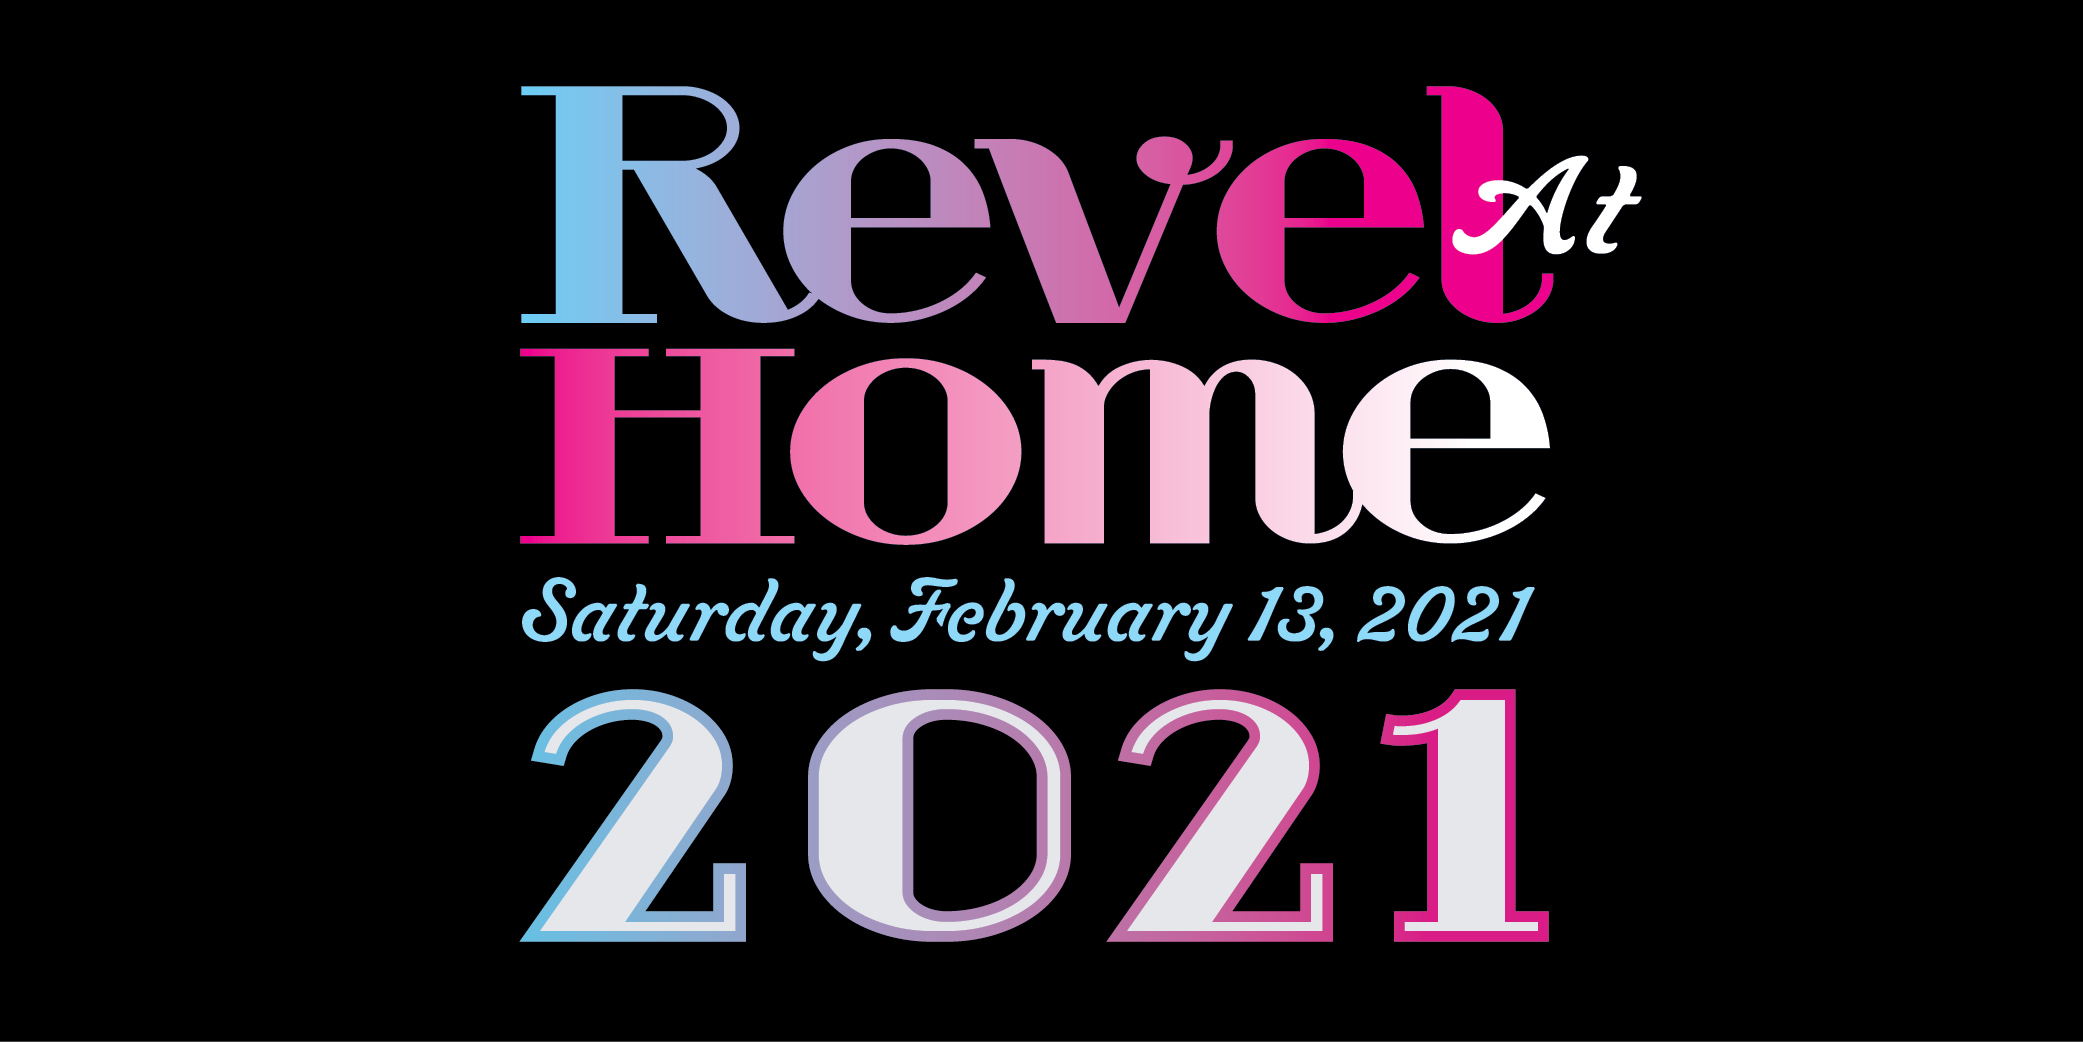 Revel at Home - Heart of America Shakespeare Festival Gala - Romantic Revels 2021